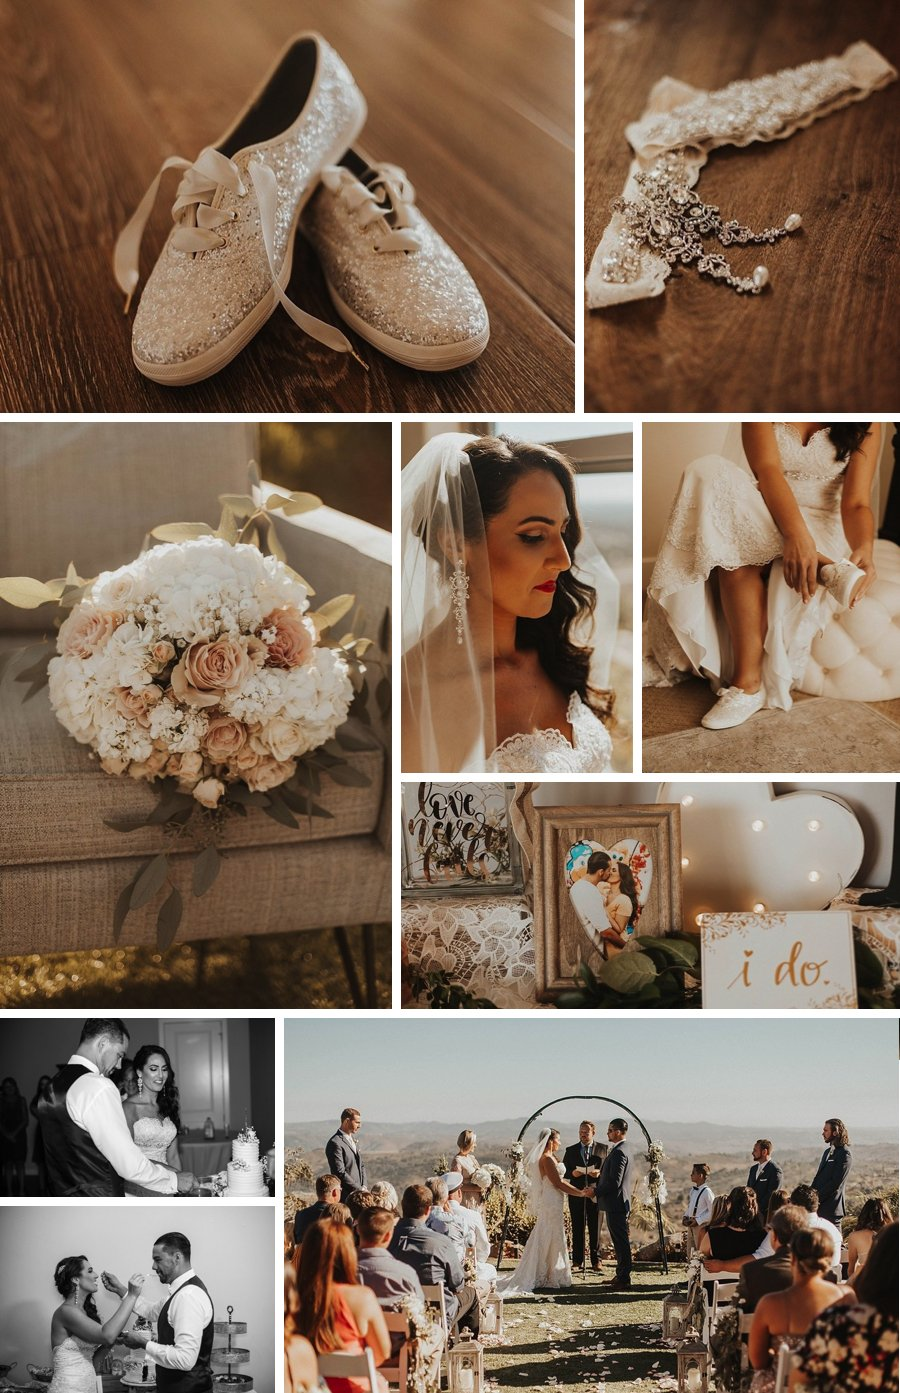 Real wedding: Californian hilltop and tacos